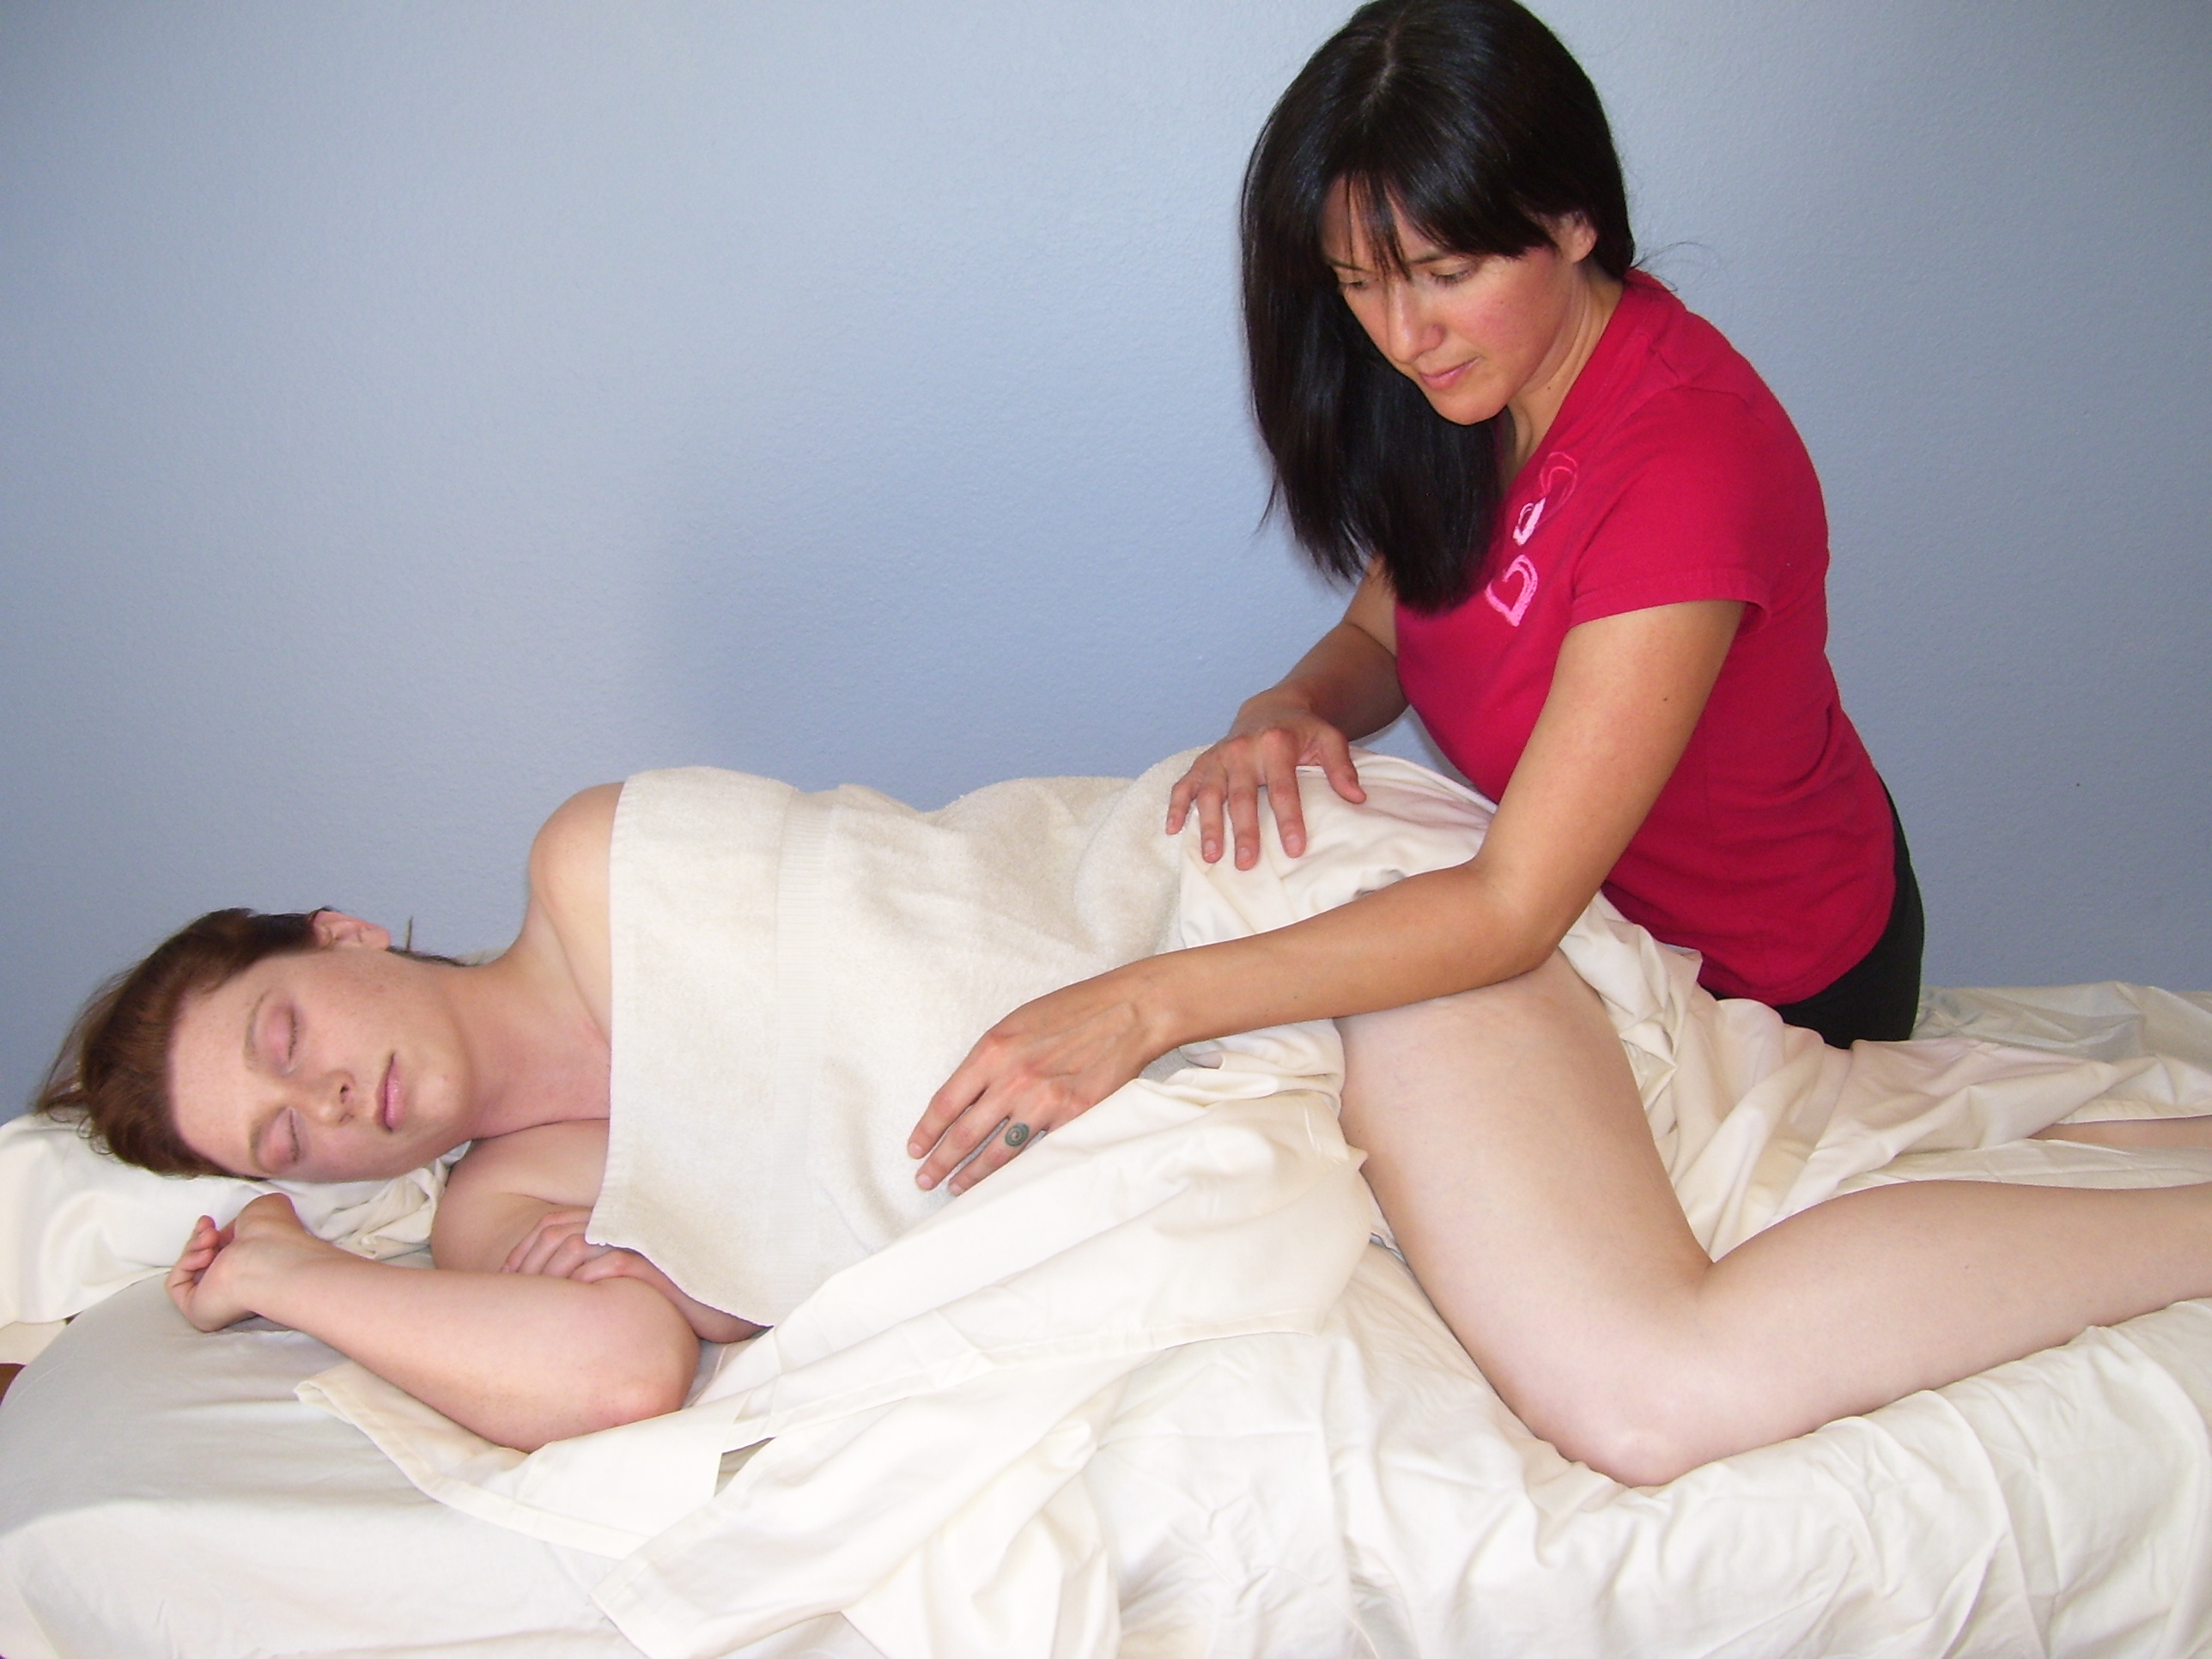 Medical Massage for Leg, Knee, Foot/Ankle Pain